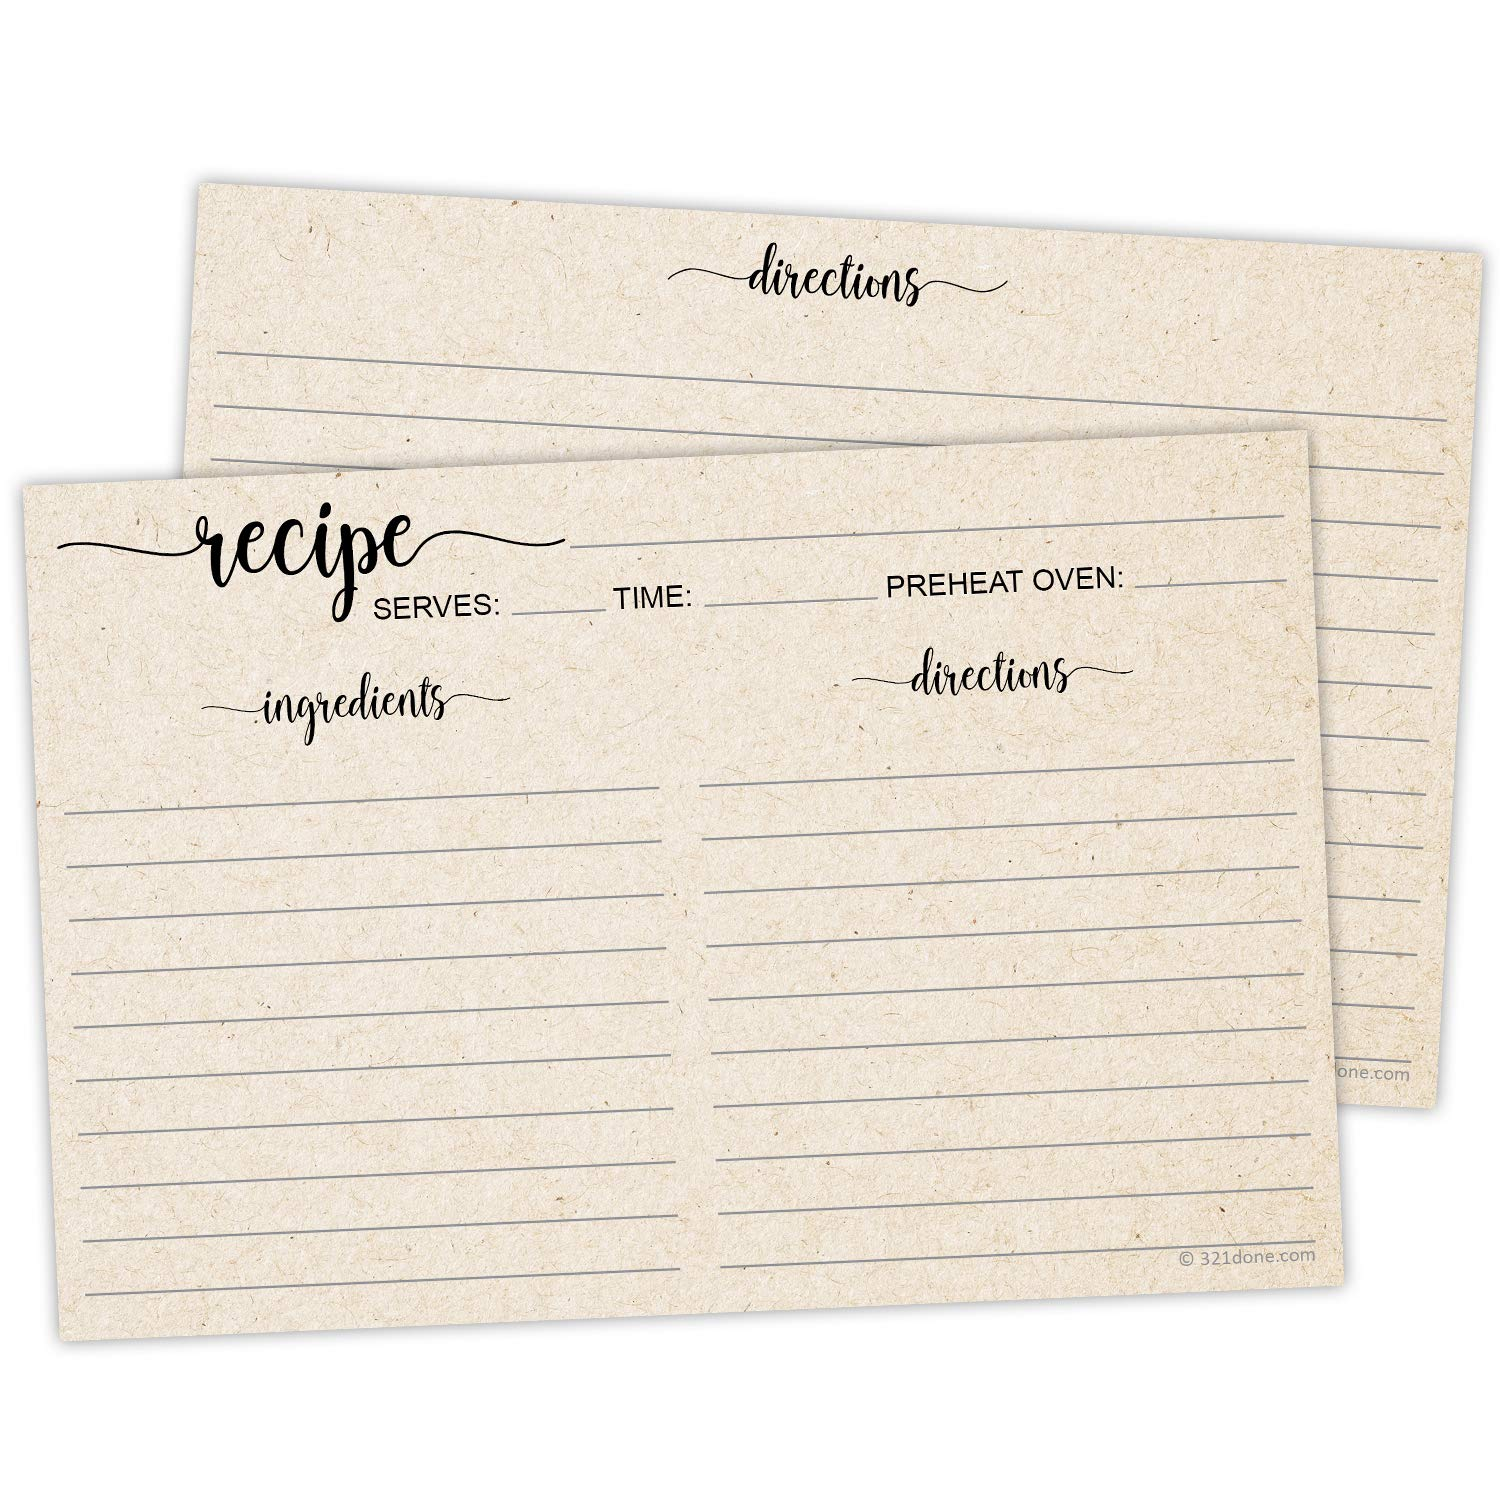 321Done 4'' x 6'' Recipe Cards (Set of 50) - Thick Double Sided Premium Card Stock with Kraft Paper Look - Made in USA - Script Font Minimalist, Large Kraft by 321Done